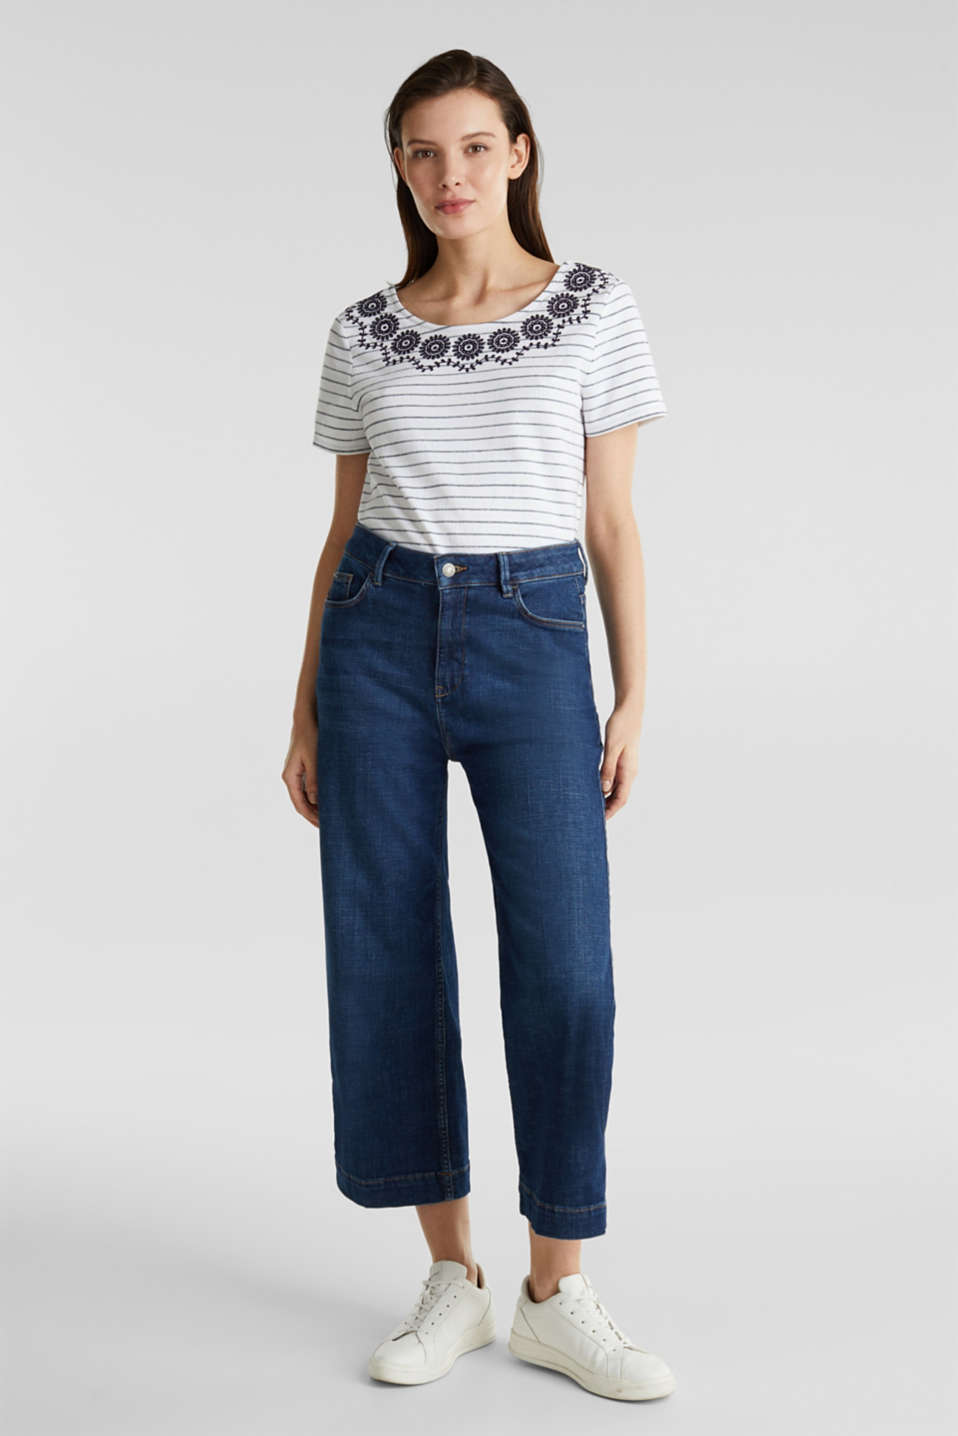 Striped top with embroidery, NAVY, detail image number 1